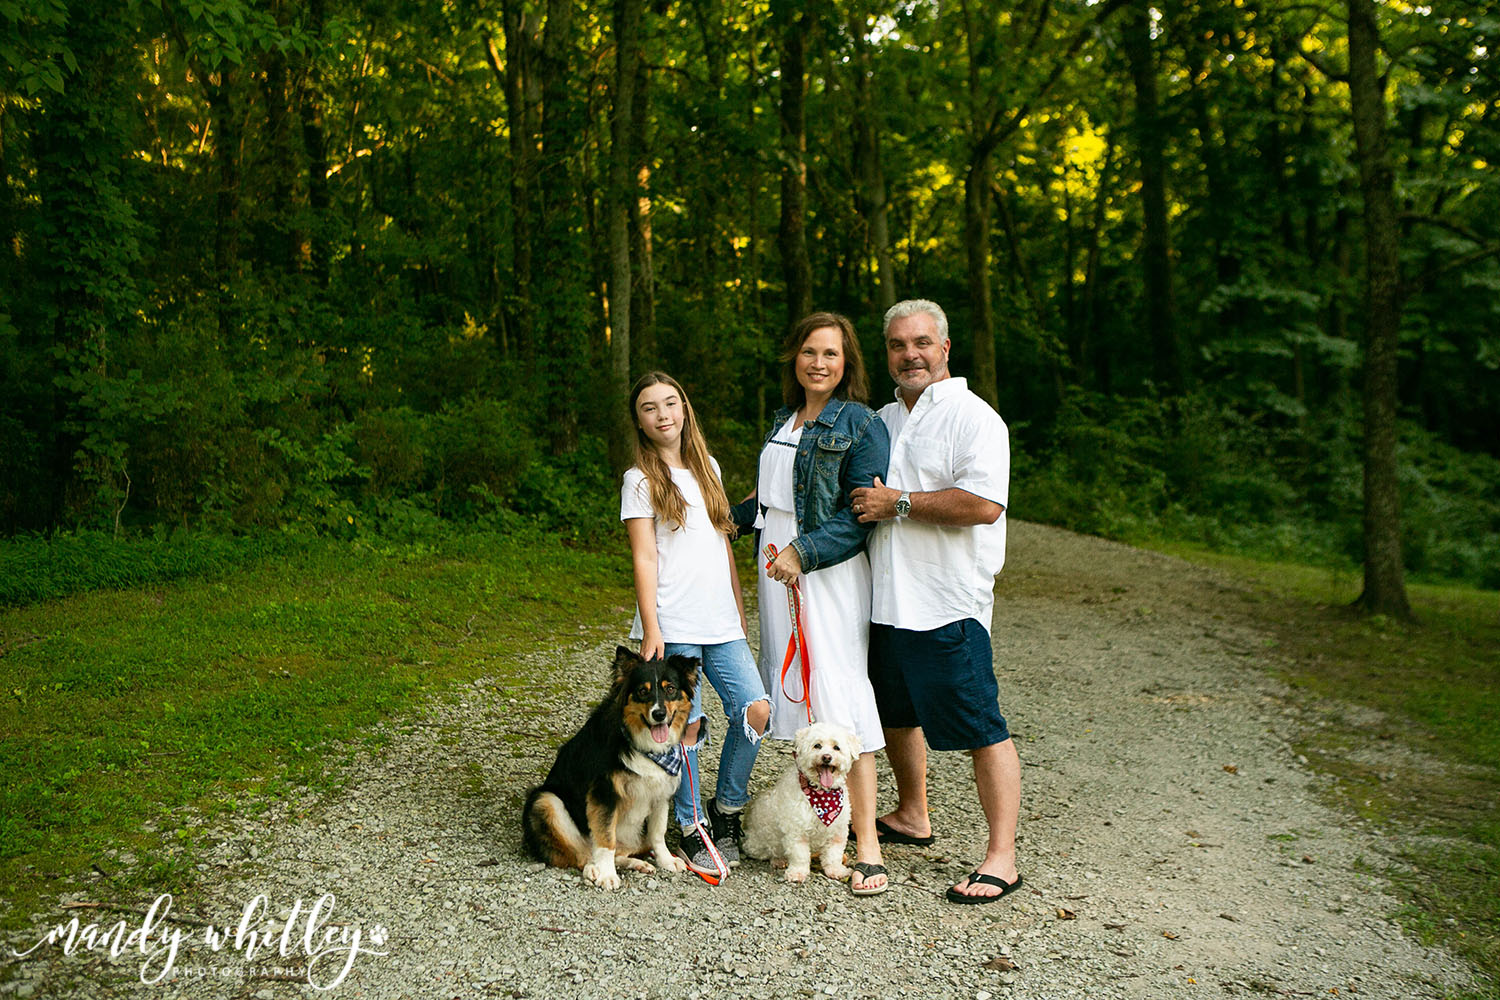 Thompson Station Family Photographer